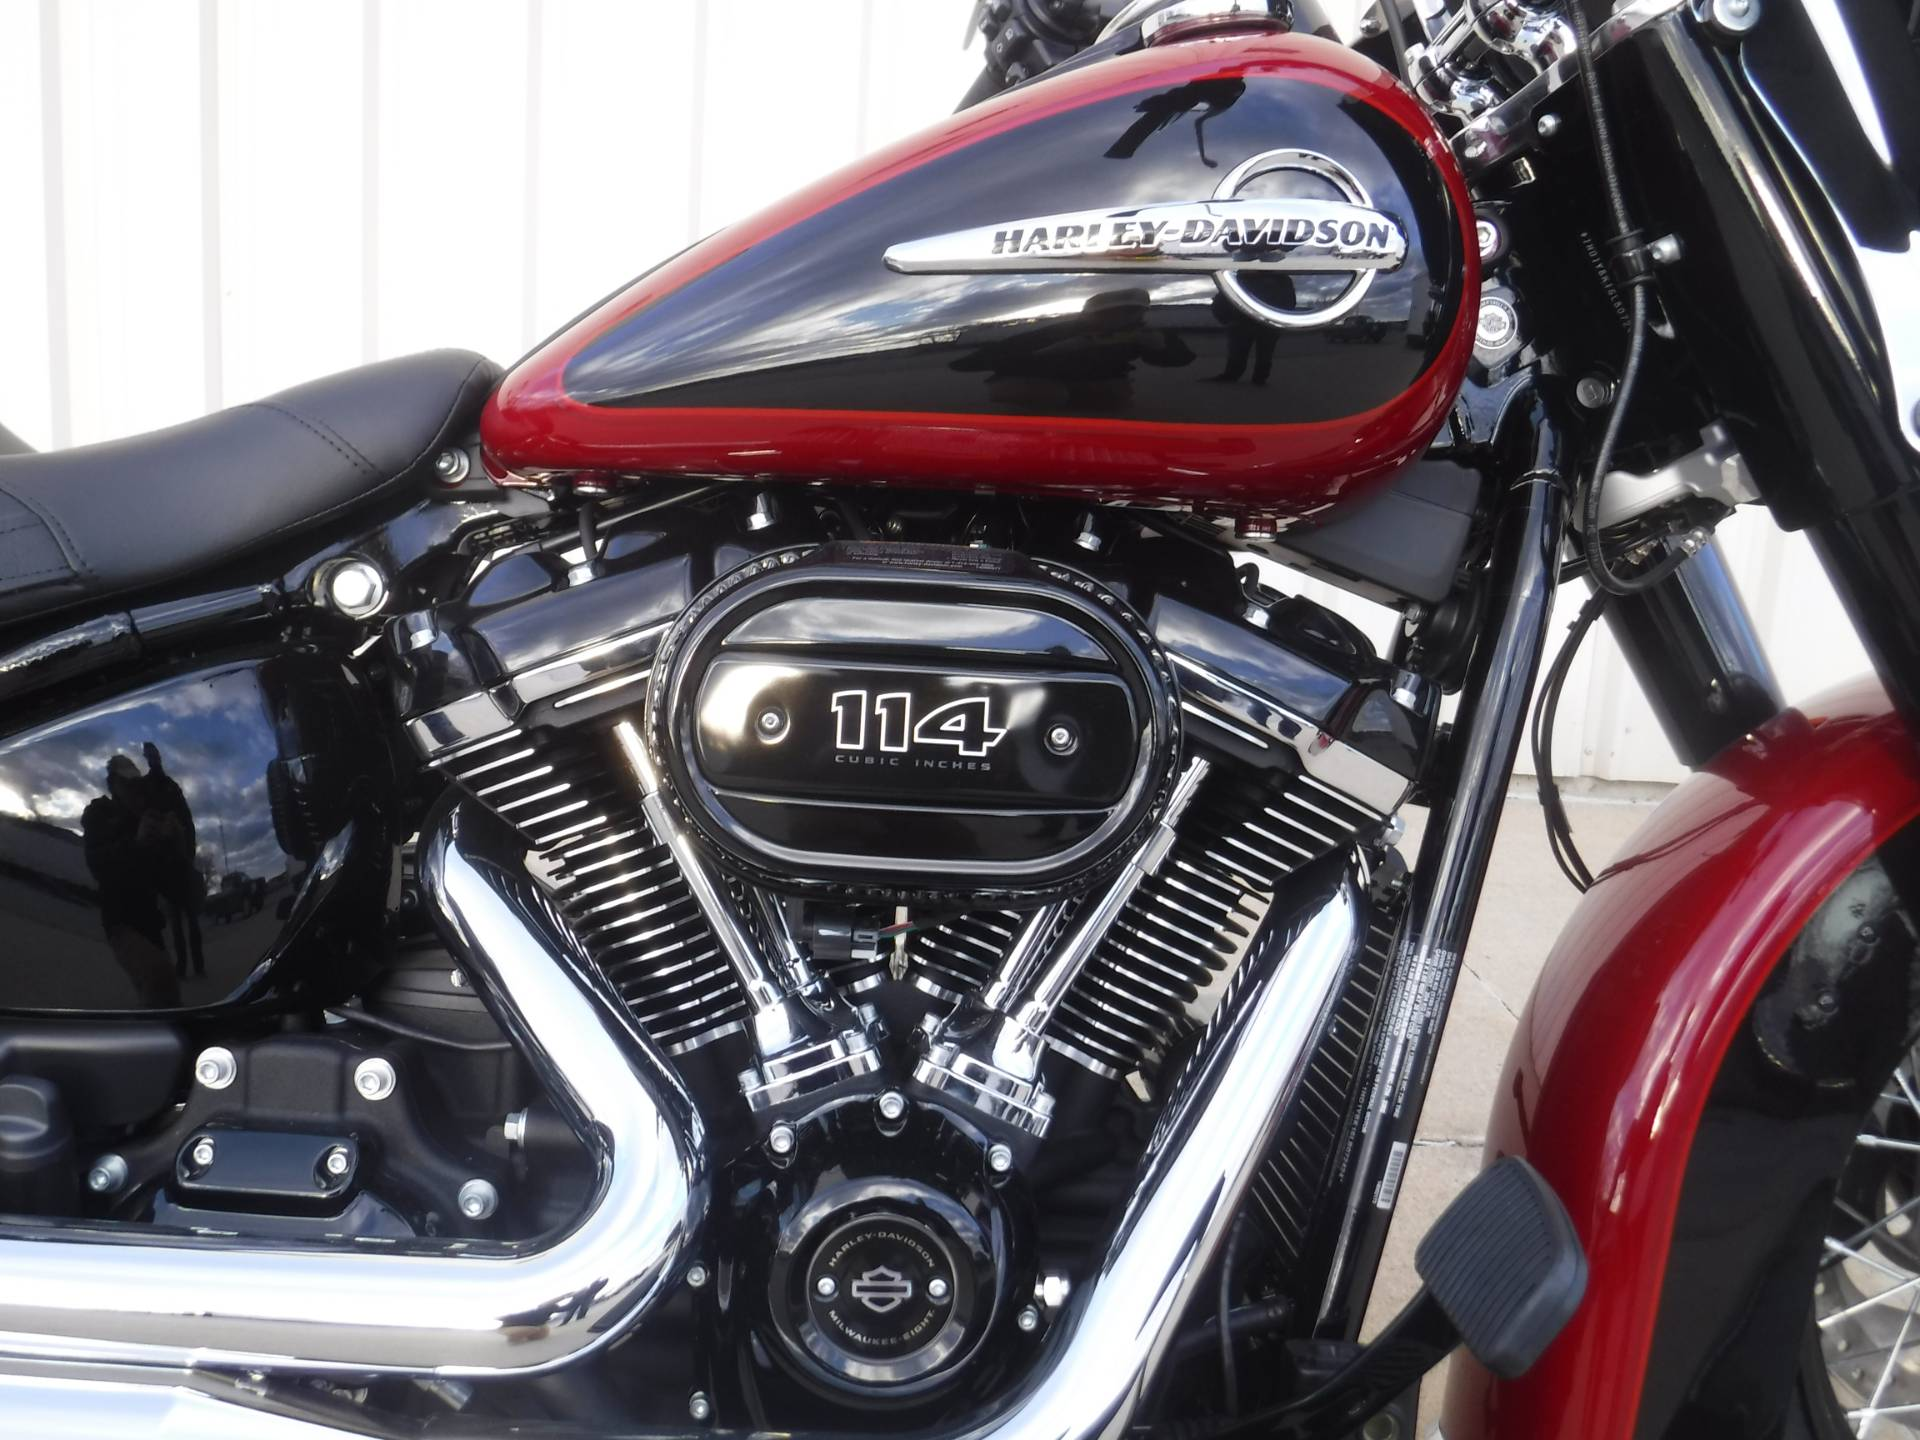 2020 Harley-Davidson Heritage Classic 114 in Waterloo, Iowa - Photo 2